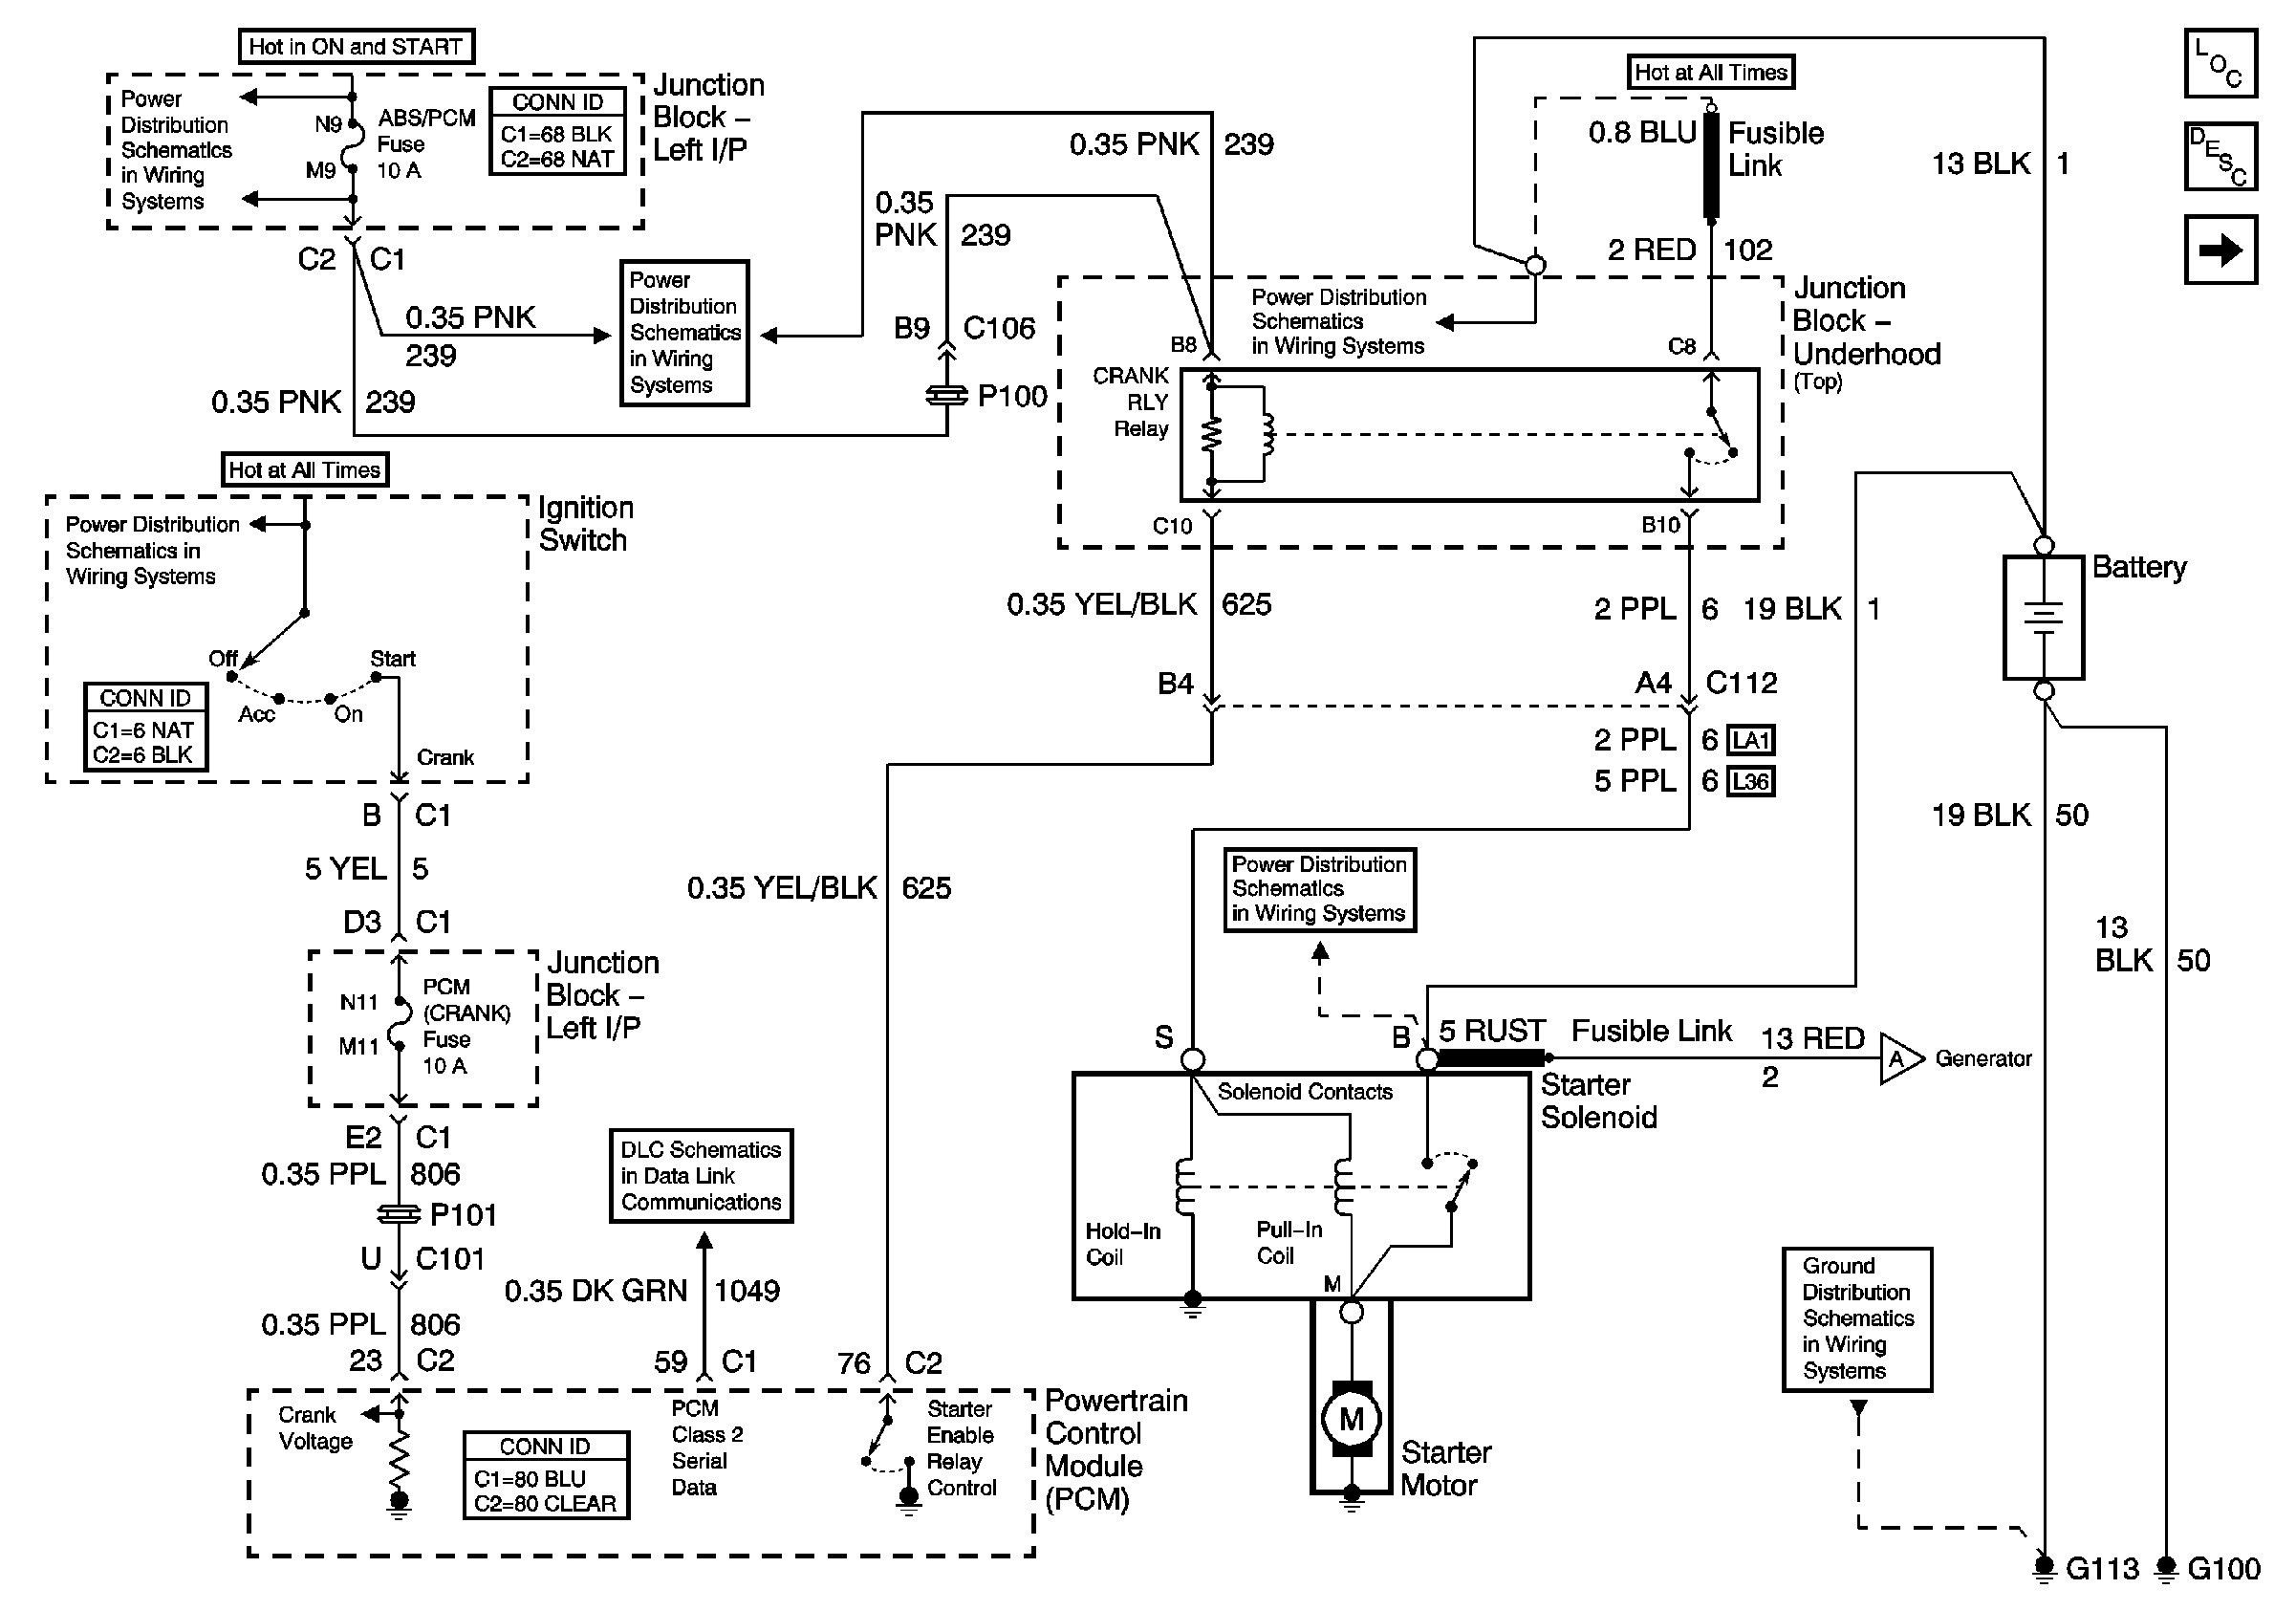 New 2002 Dodge Ram 1500 Alarm Wiring Diagram